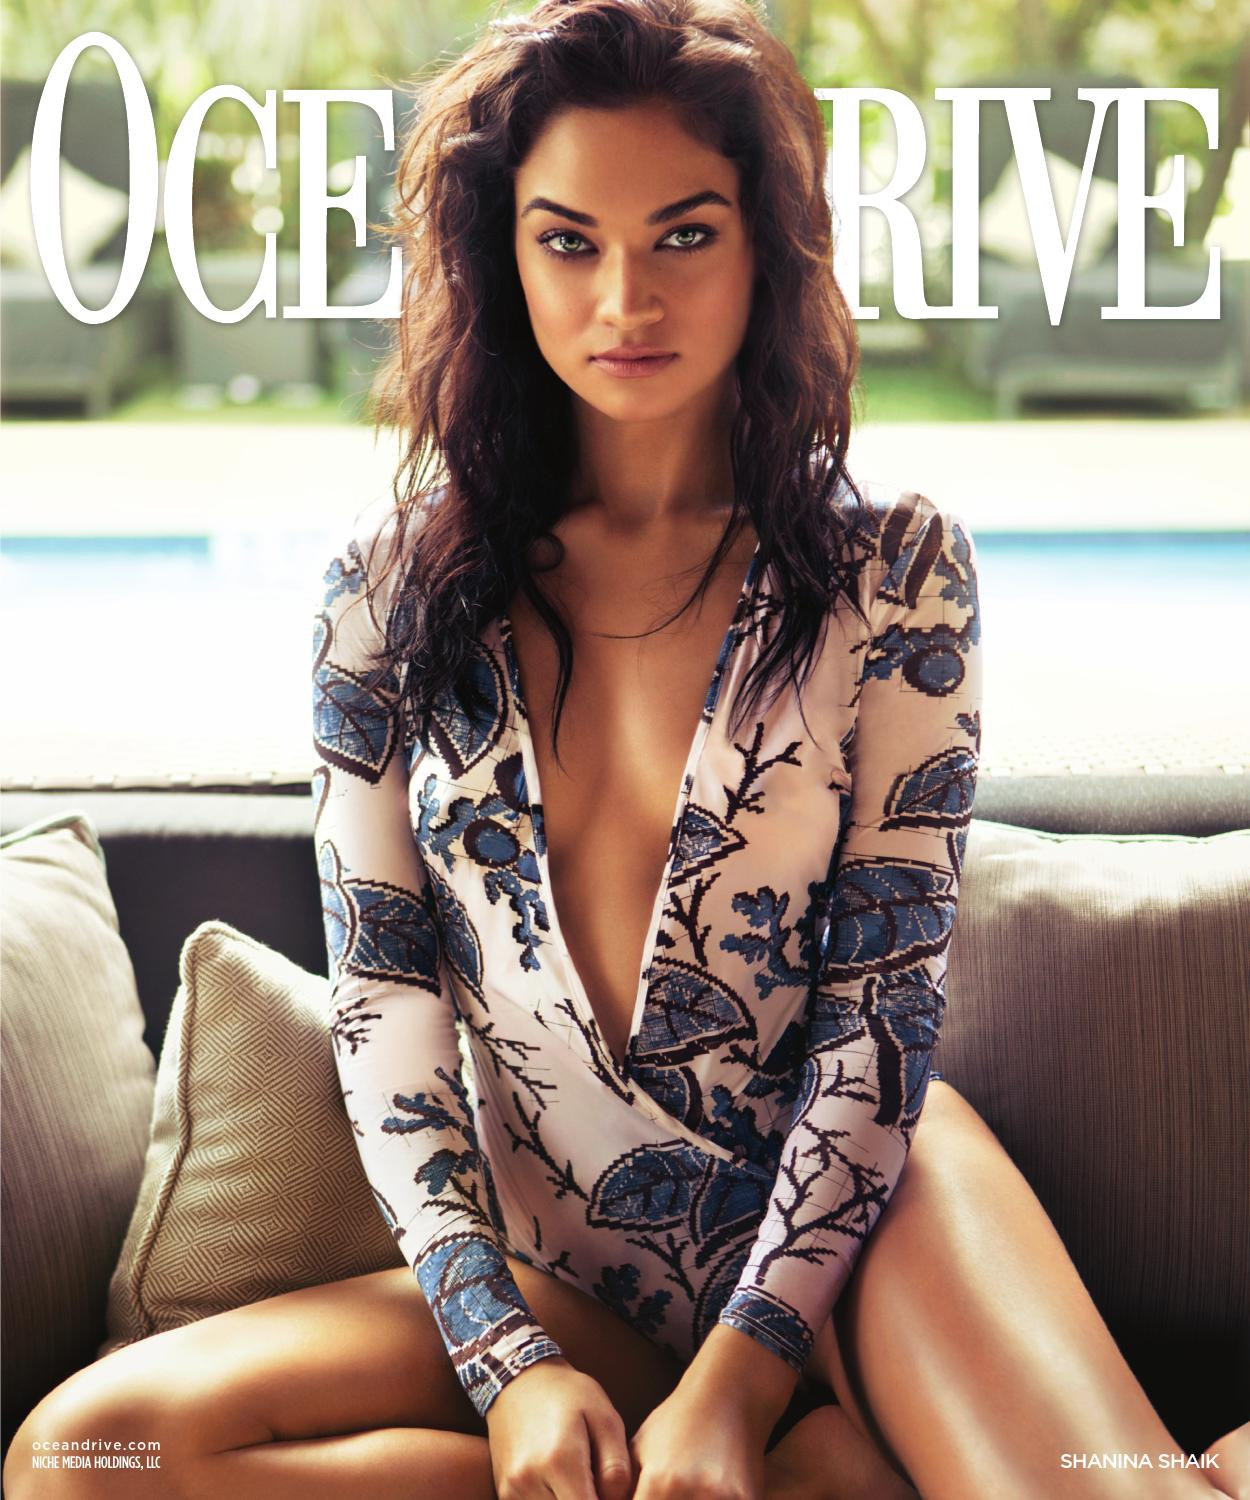 Ocean Drive 2016 Issue 2 February Shanina Shaik By